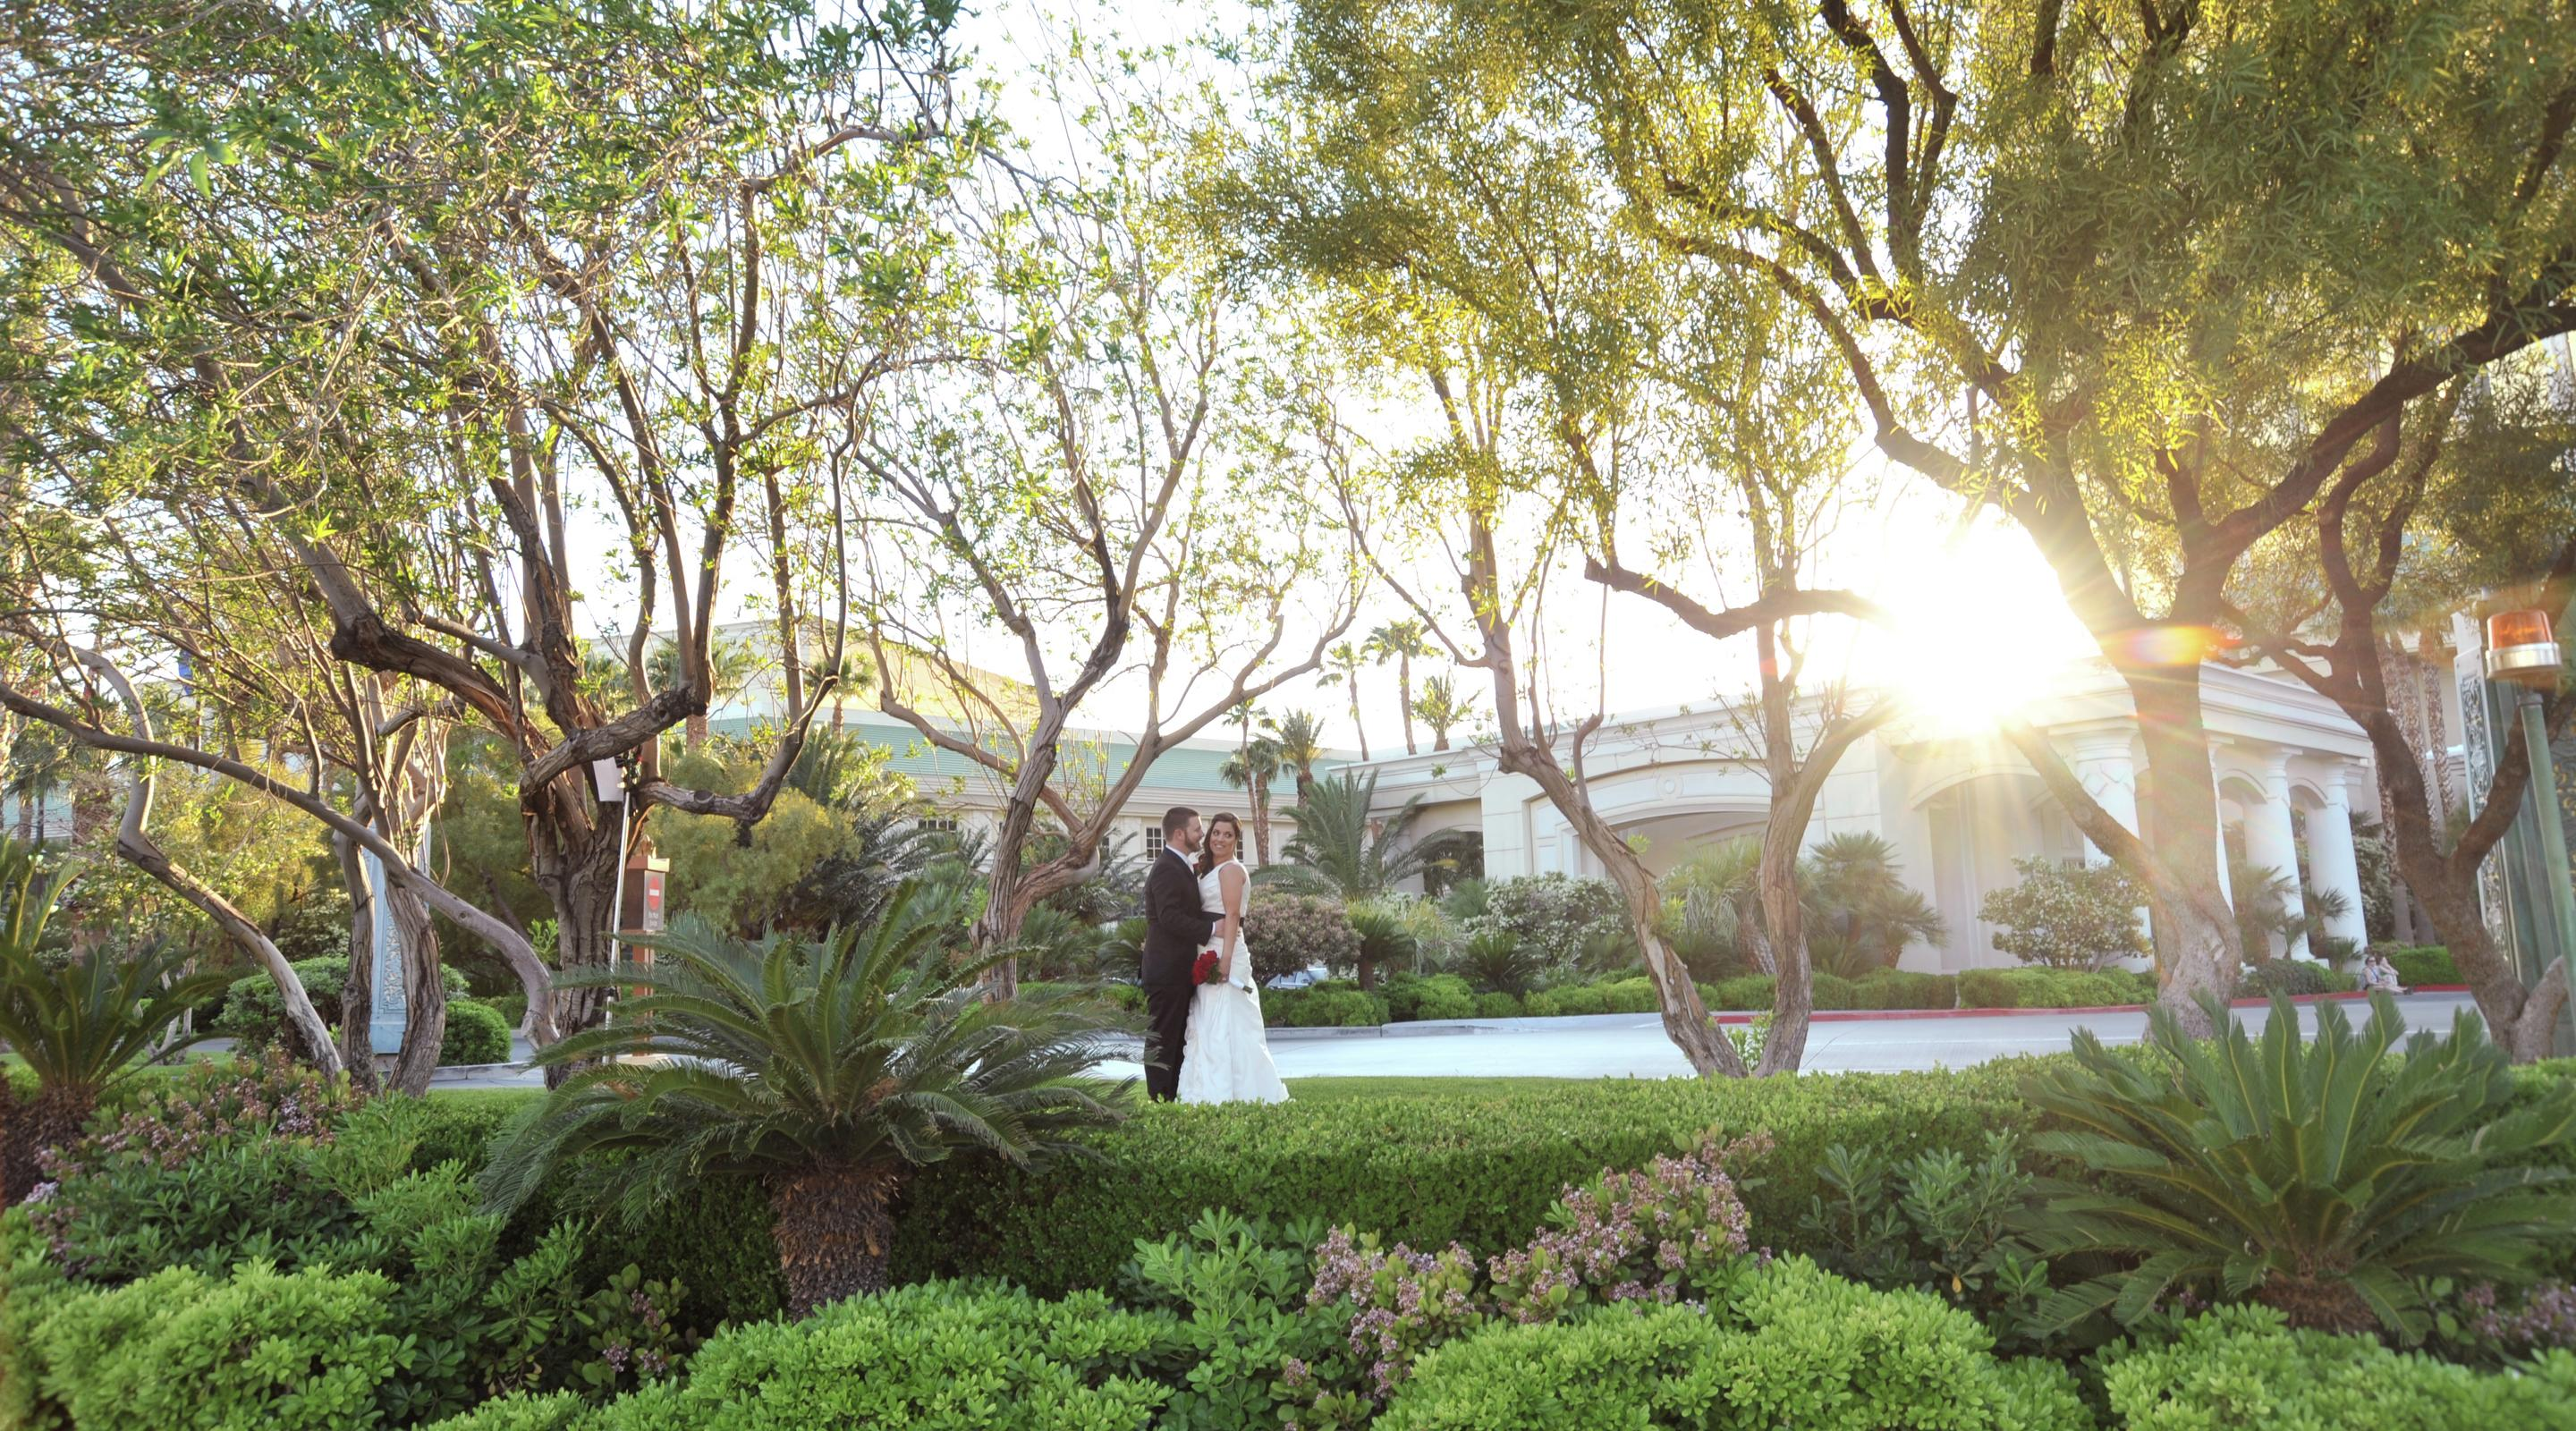 Las Vegas Wedding Packages All Inclusive.Wedding Planners Mandalay Bay